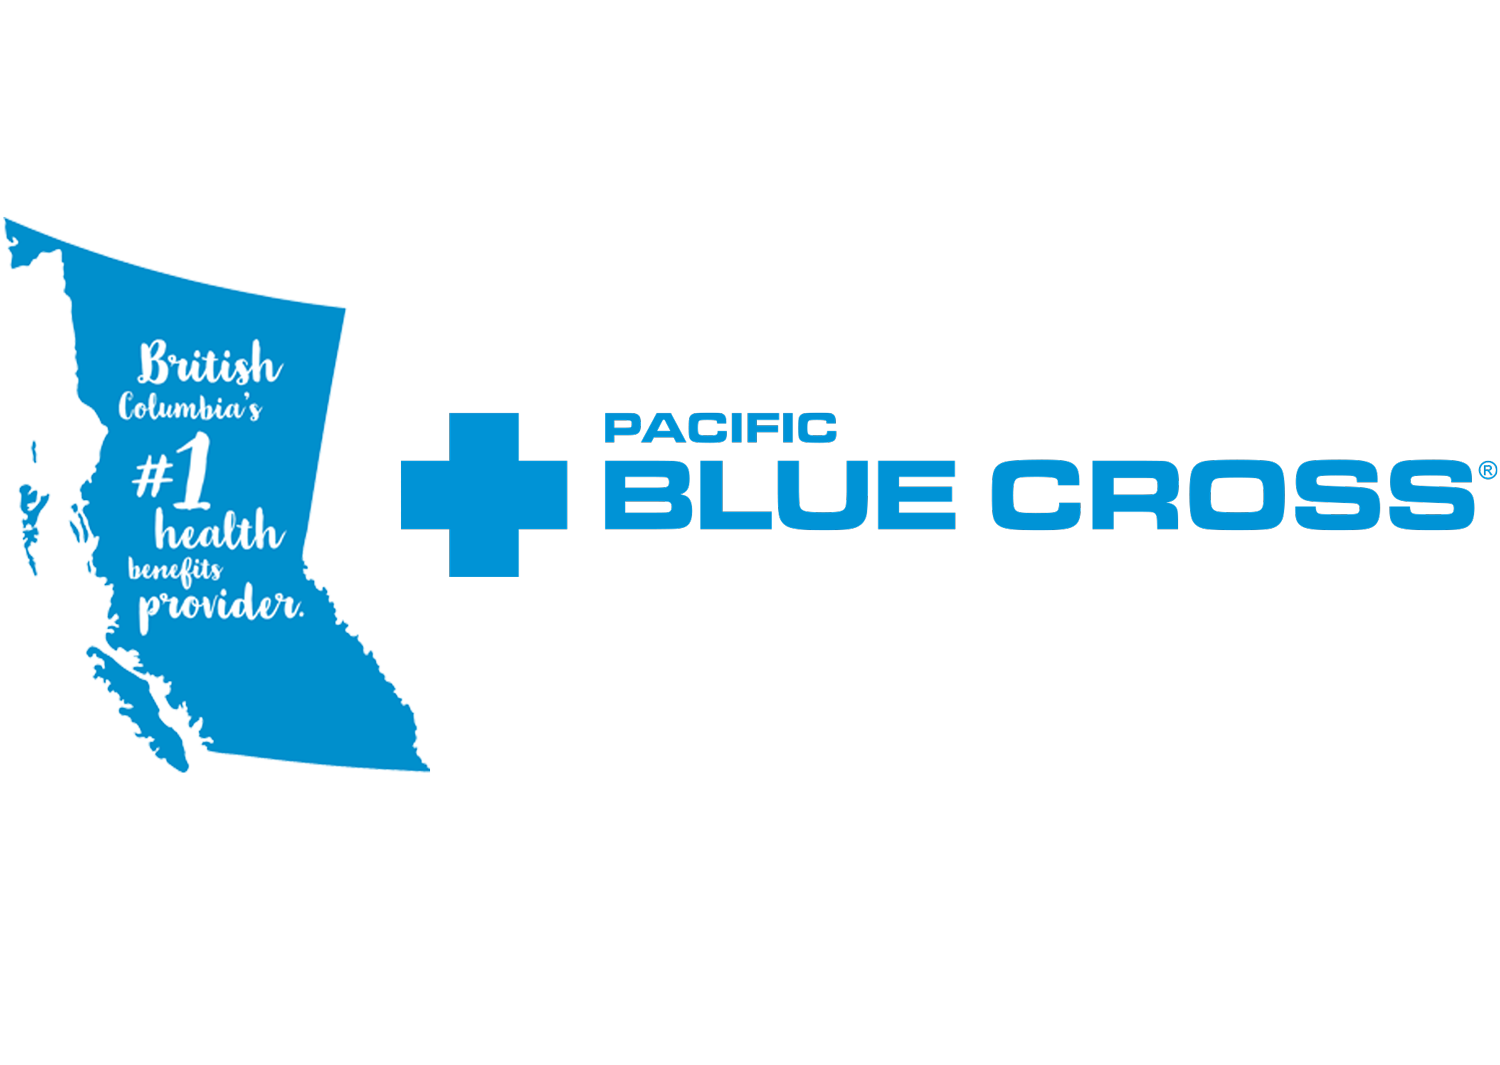 pacificbluecross.png